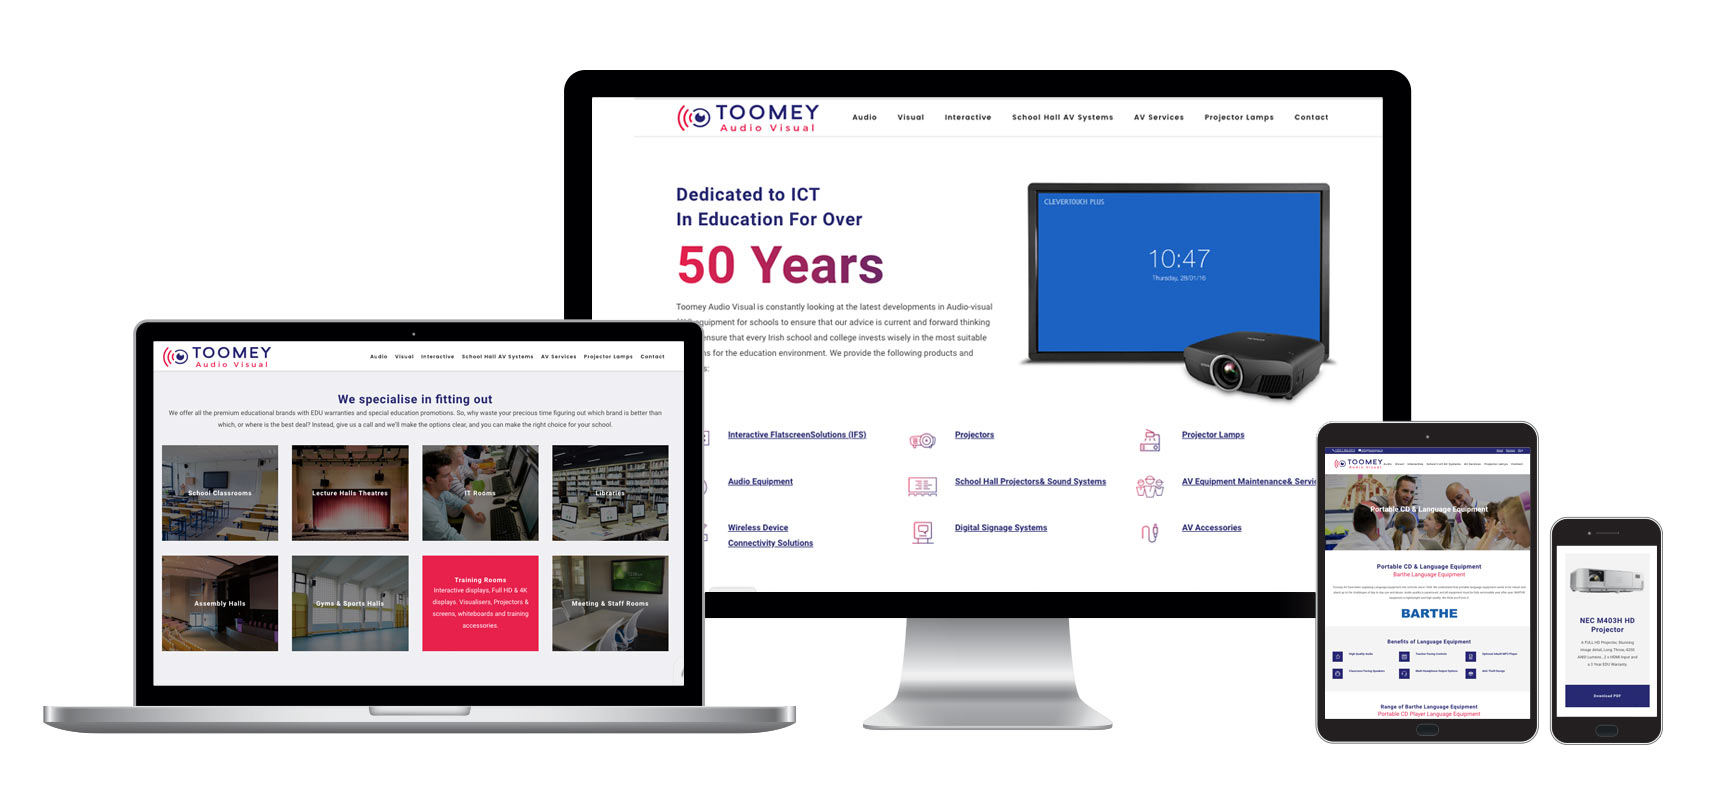 Web Design - Toomey AV - Ireland